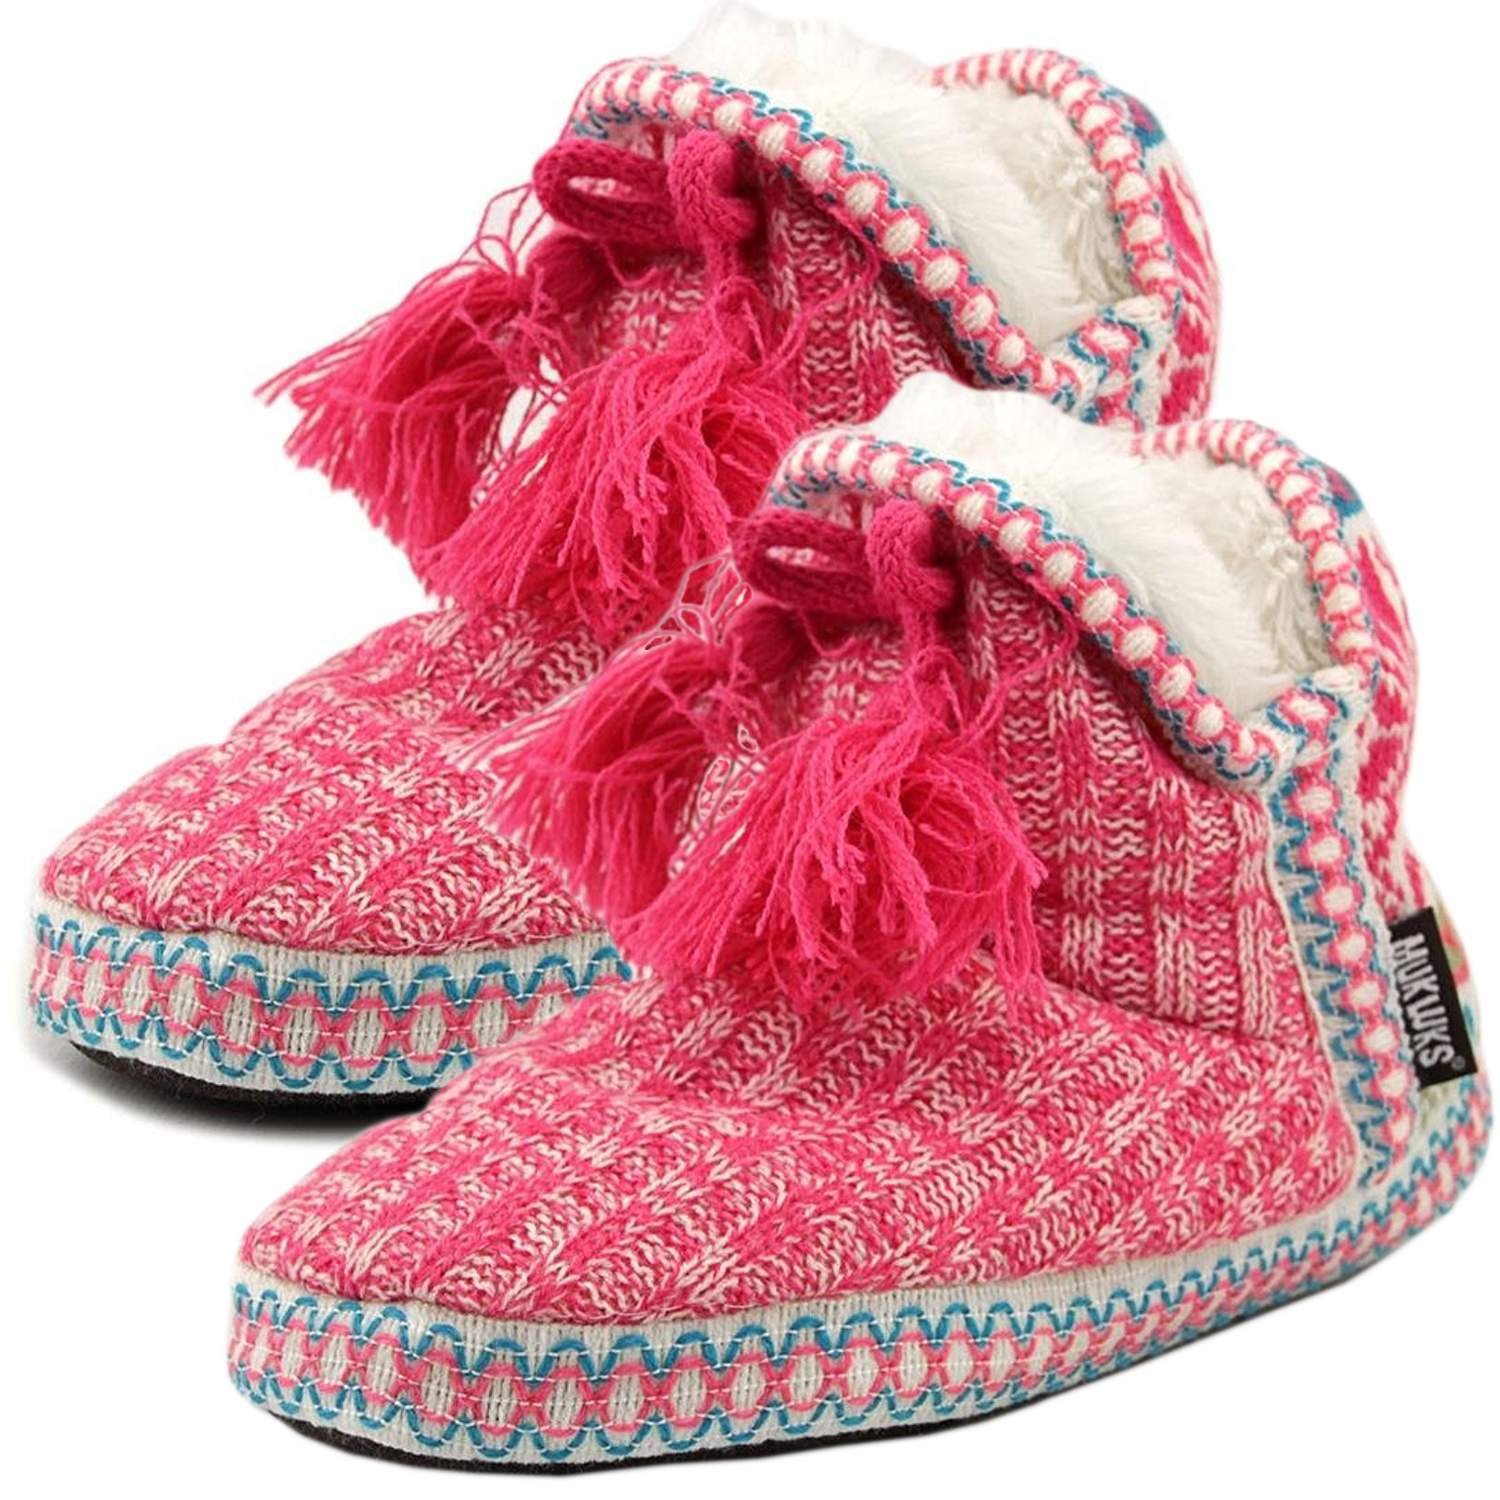 Knitting On The Net Slippers : Muk luks womens slipper boots indoor house shoes cute